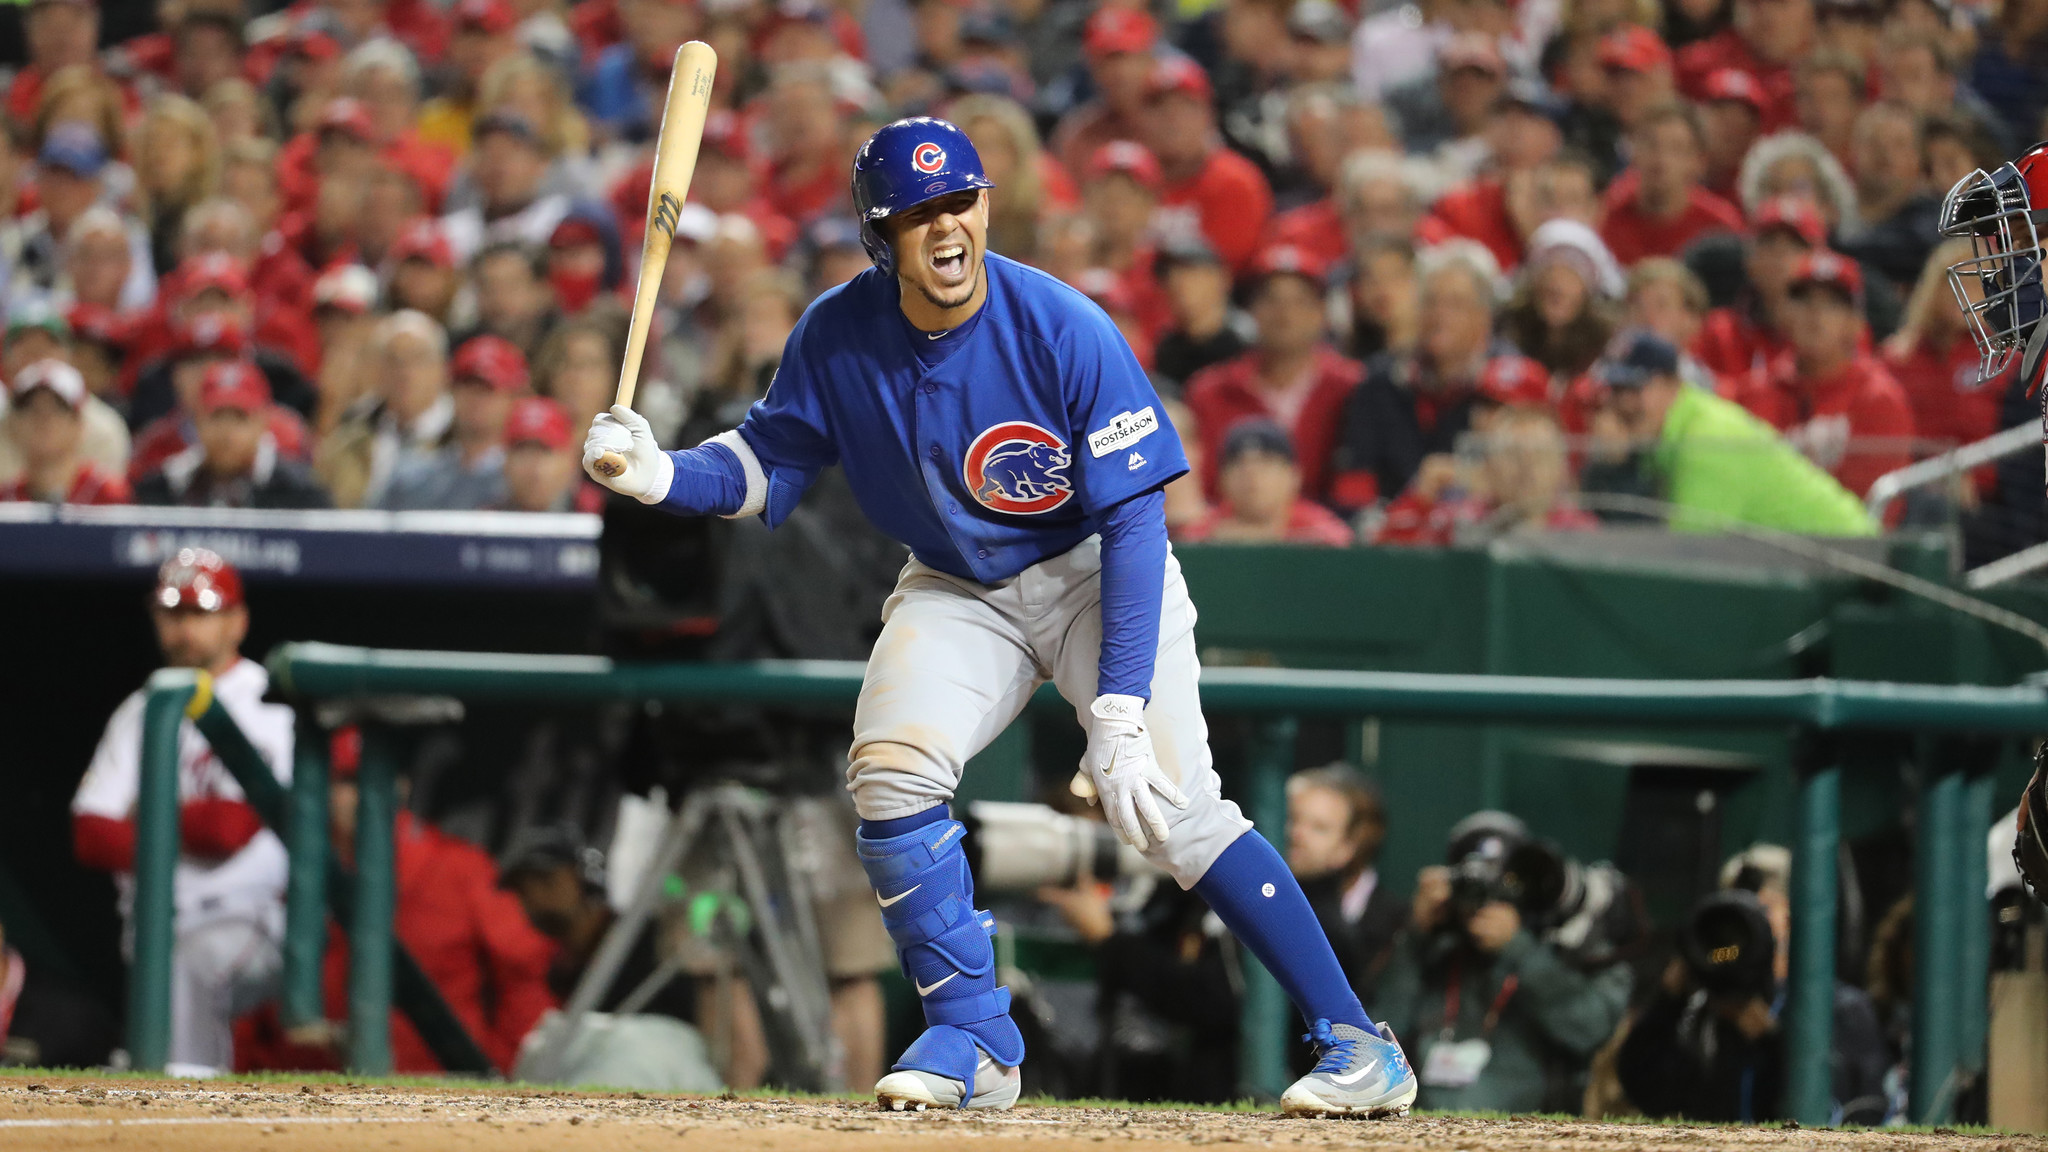 Ct-cubs-game-5-pivotal-moments-spt-1013-20171012